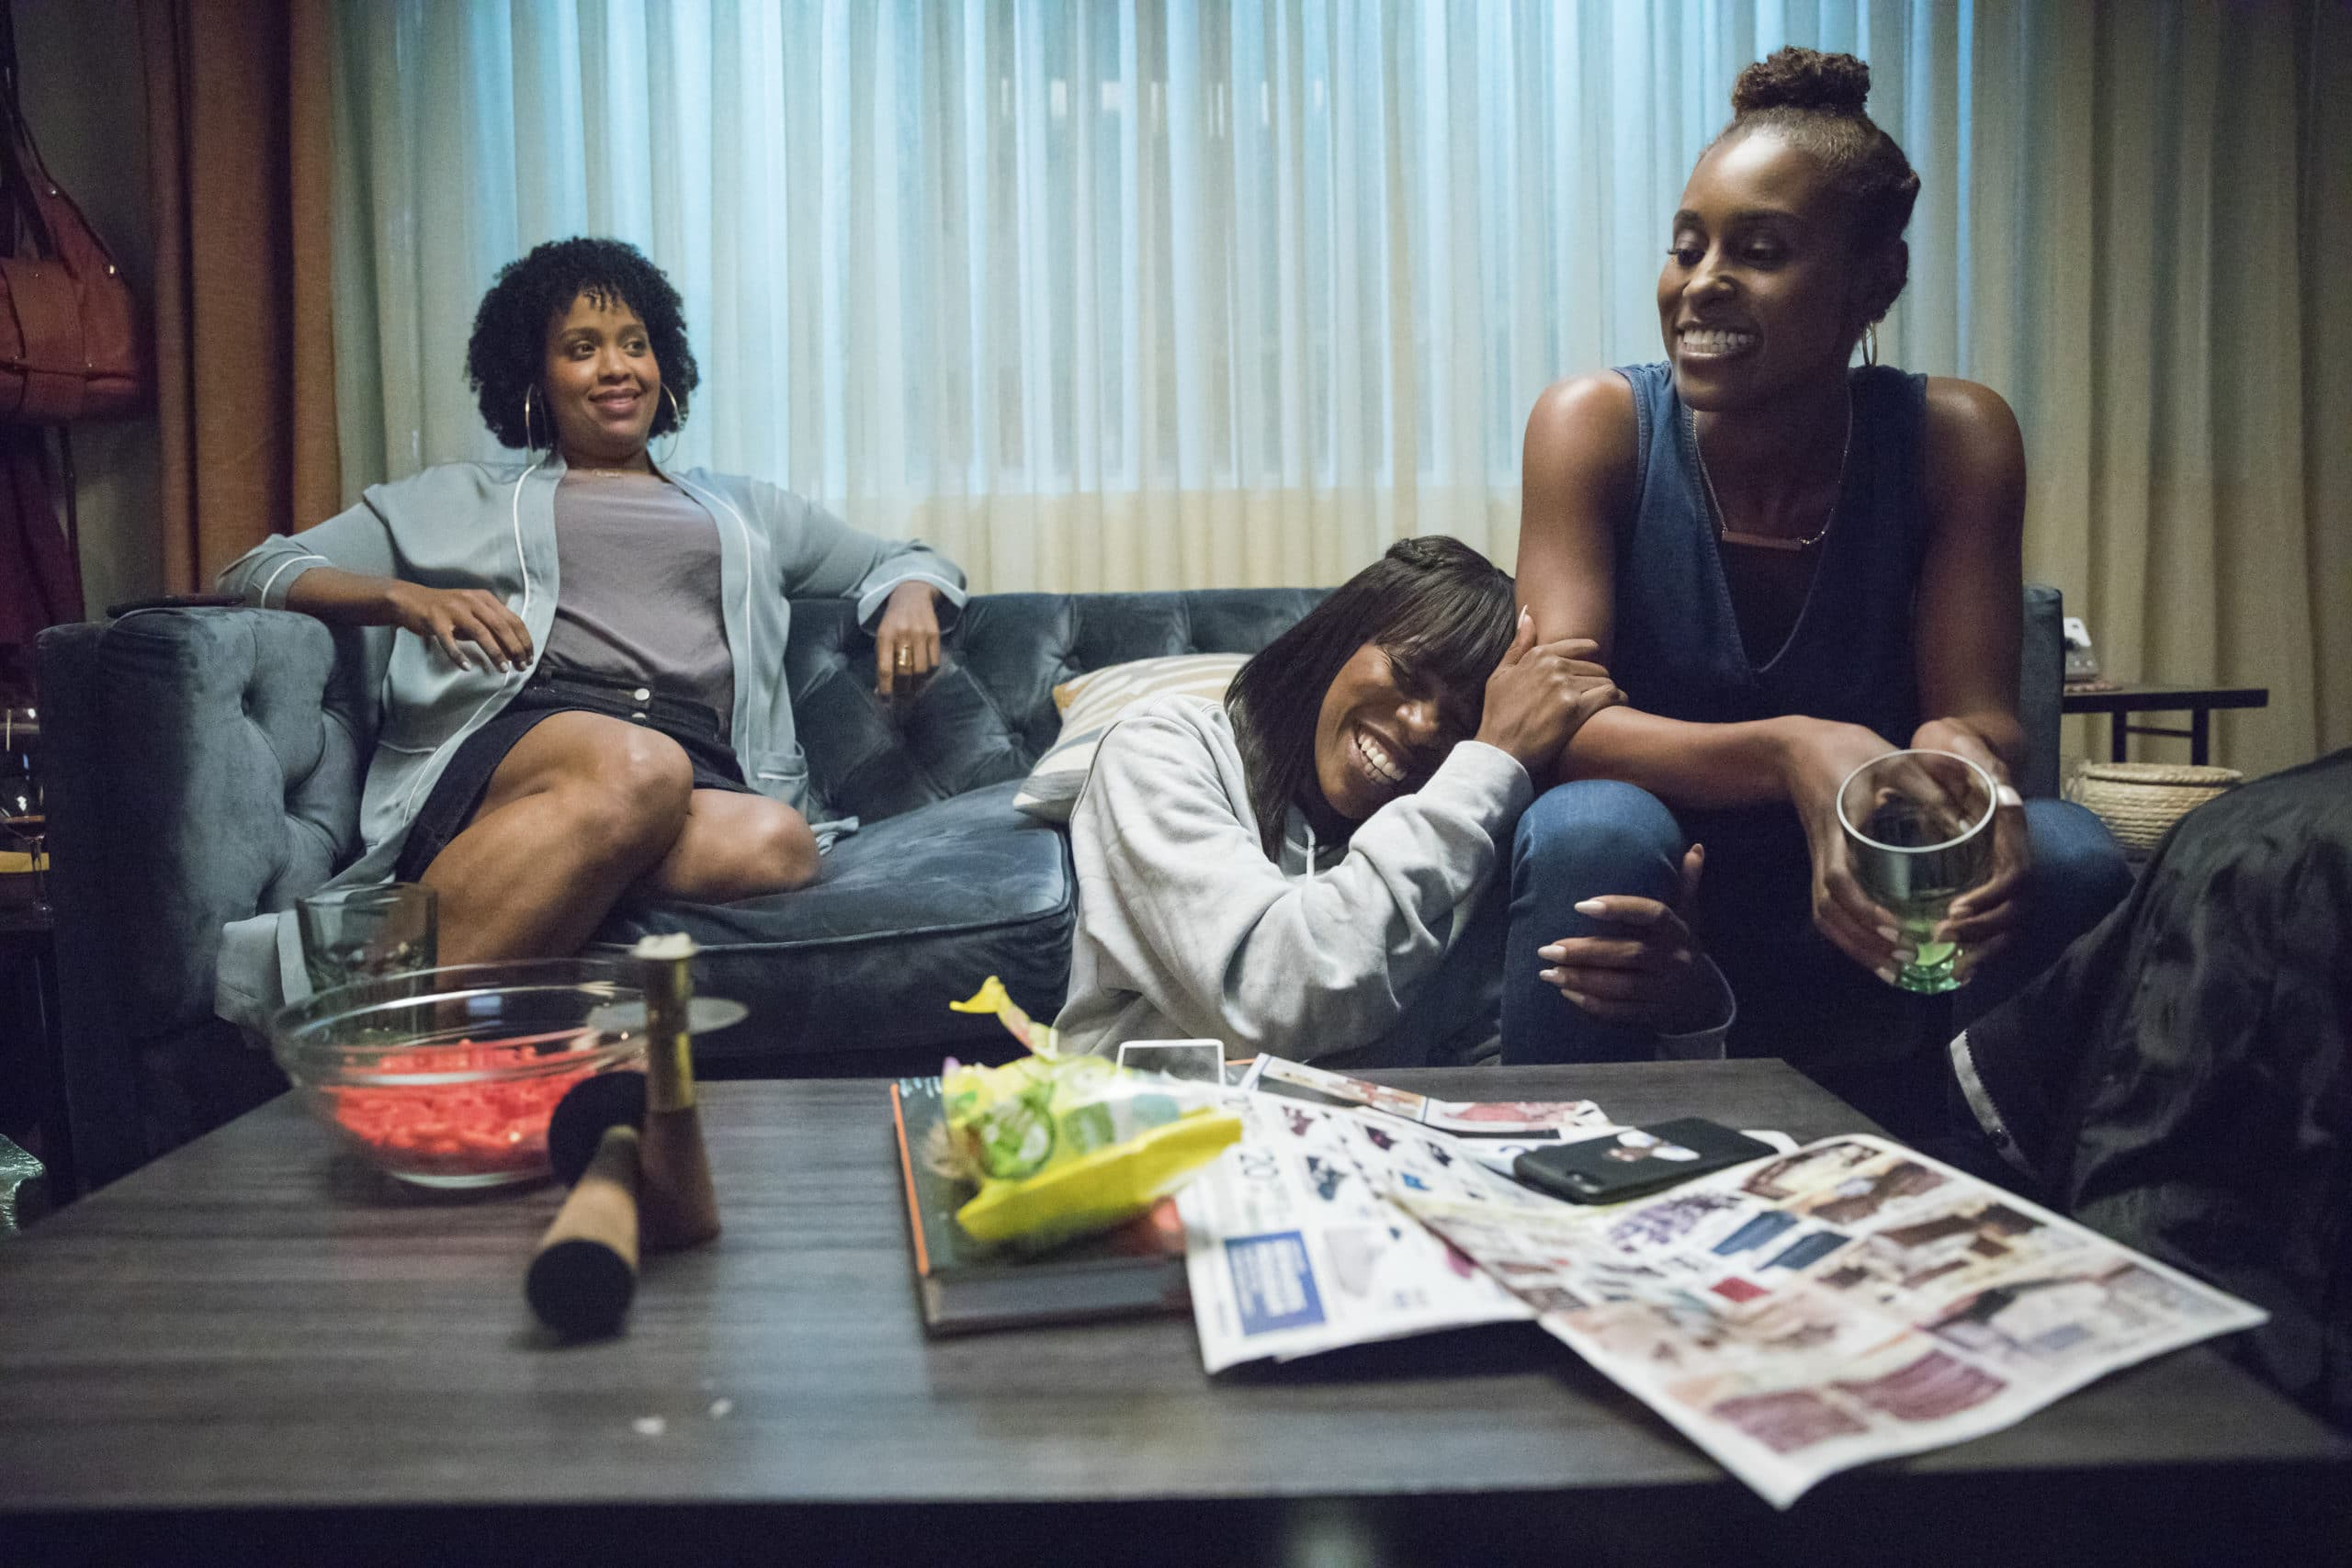 Insecure. Instead of getting down and out about having to shelter in place away from your girl squad, have agirls night inand get lost in these Top 10 binge worthy female-centric TV series that have strong female leads and will give you the girl-power you have been missing!